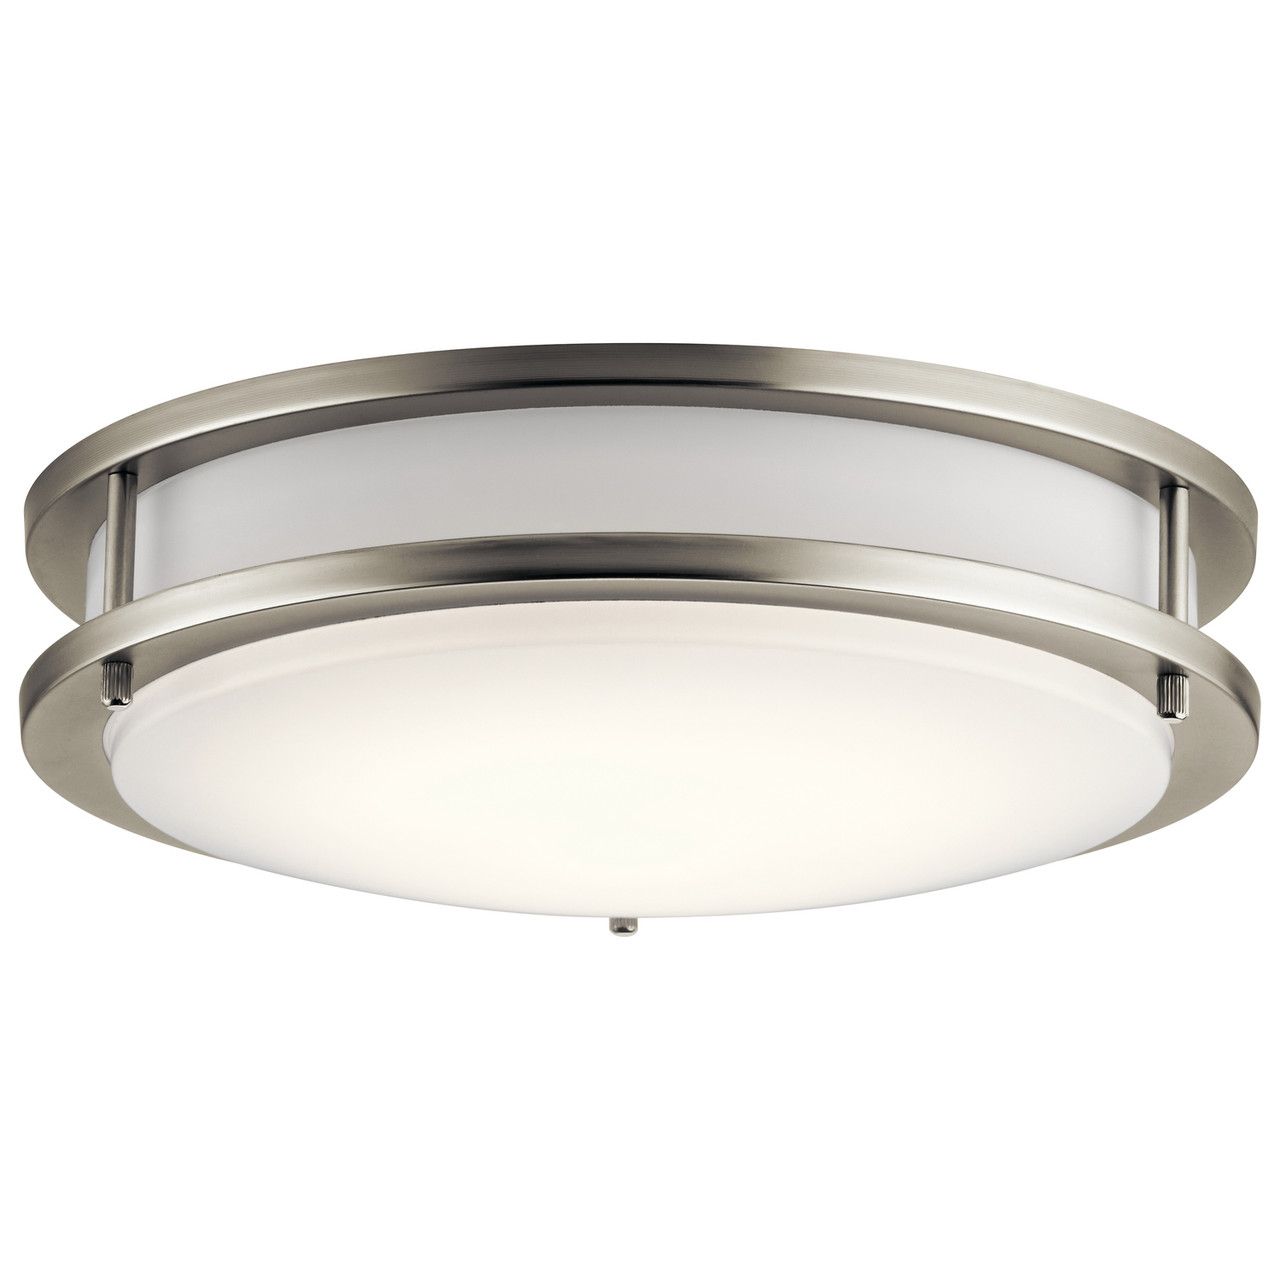 Kichler Flush Mount LED Decorative Light, Brushed Nickel, White Diffuser, Wall or Ceiling Mount, 1280 Lumens, Dimmable, 120V, 23W, 3000K (10784NILED)